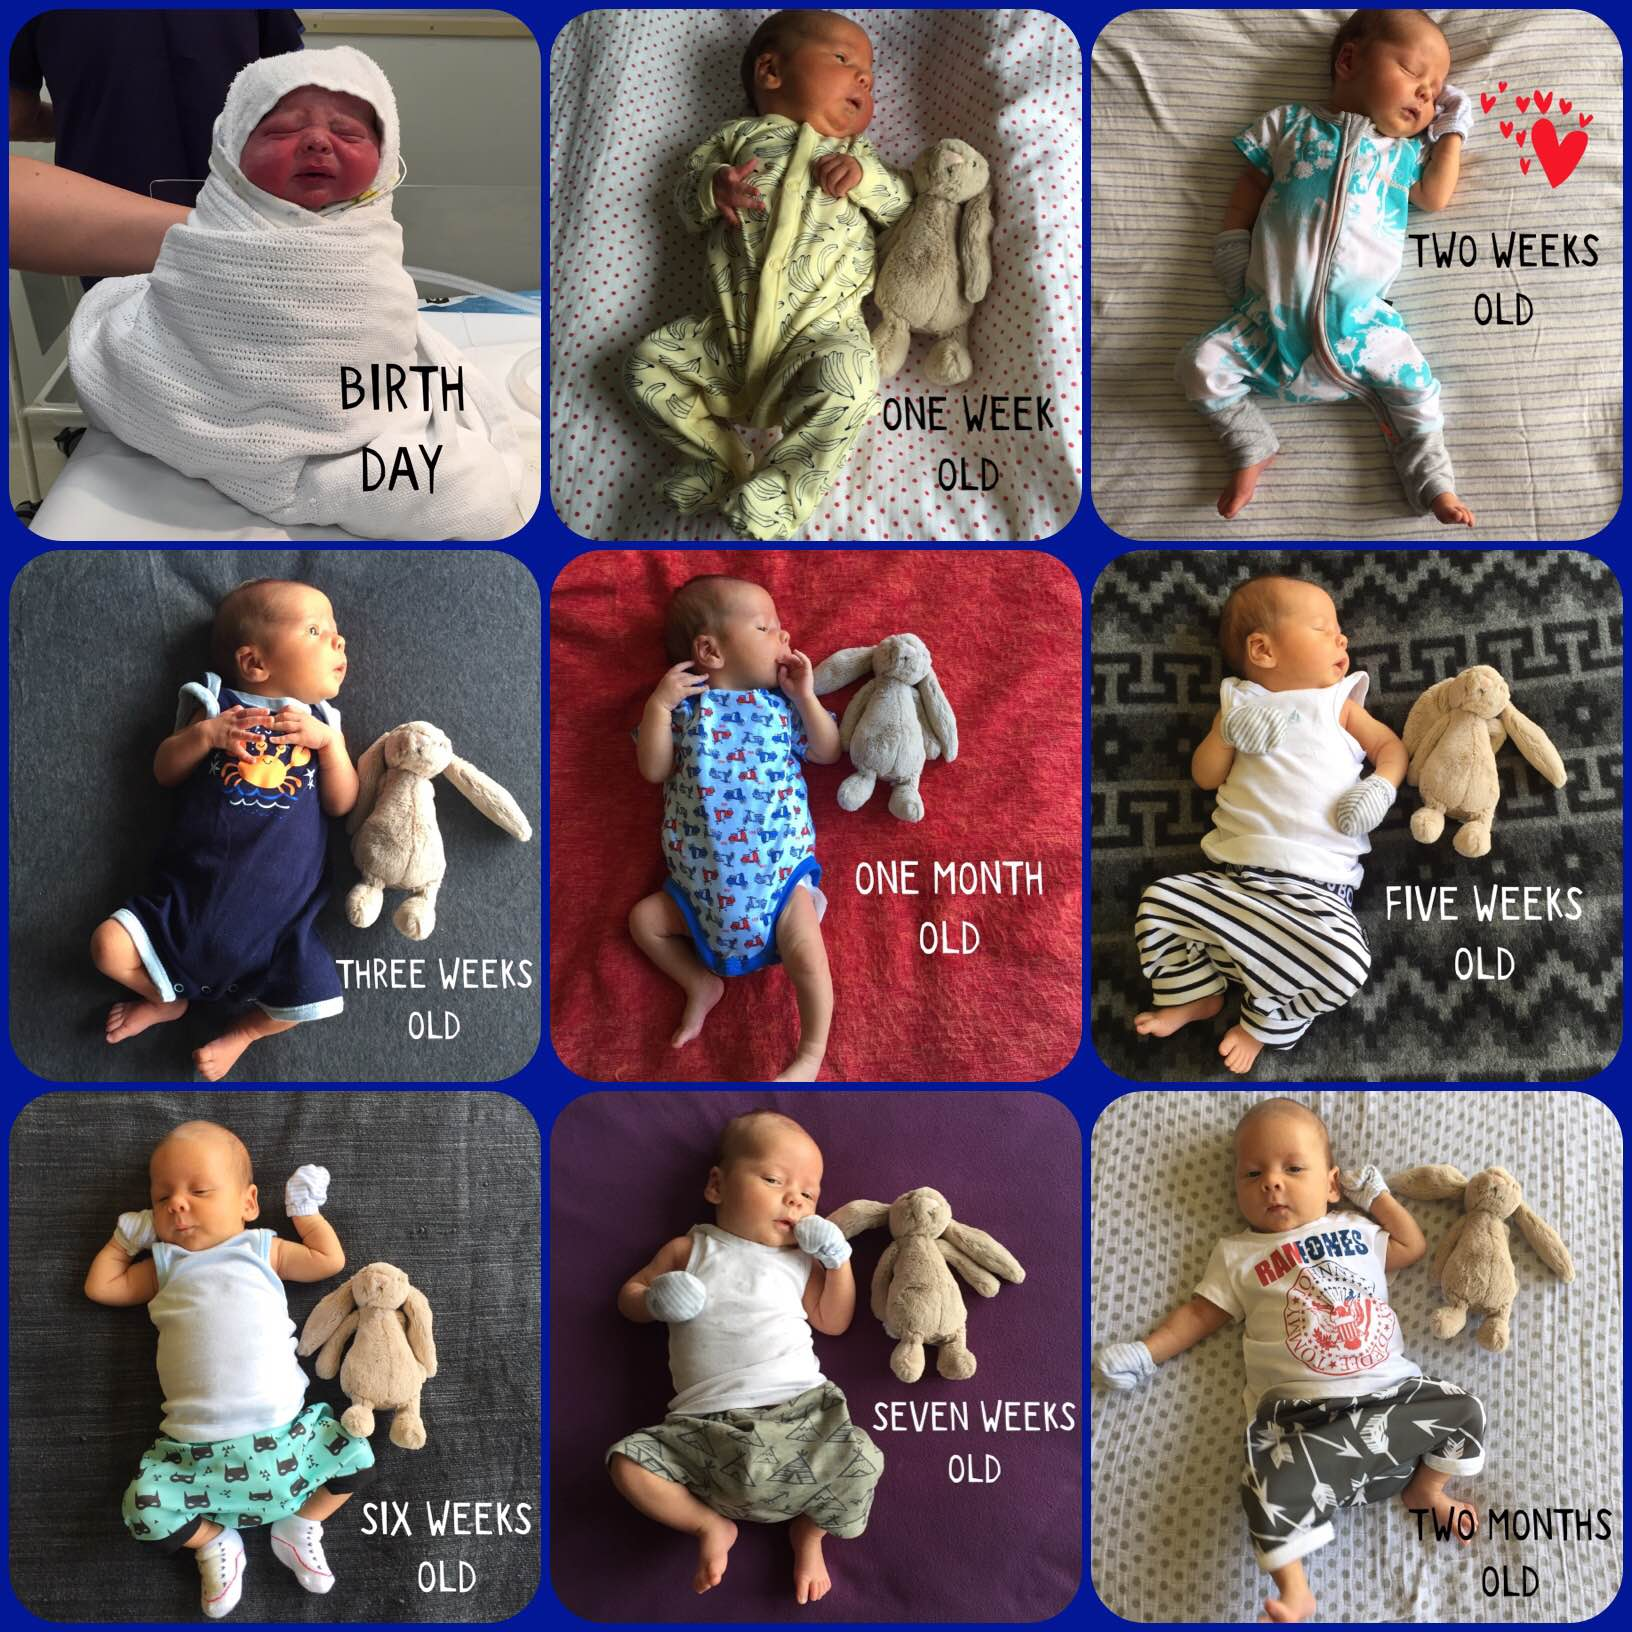 Sebastian Jaya birth to two months old collage